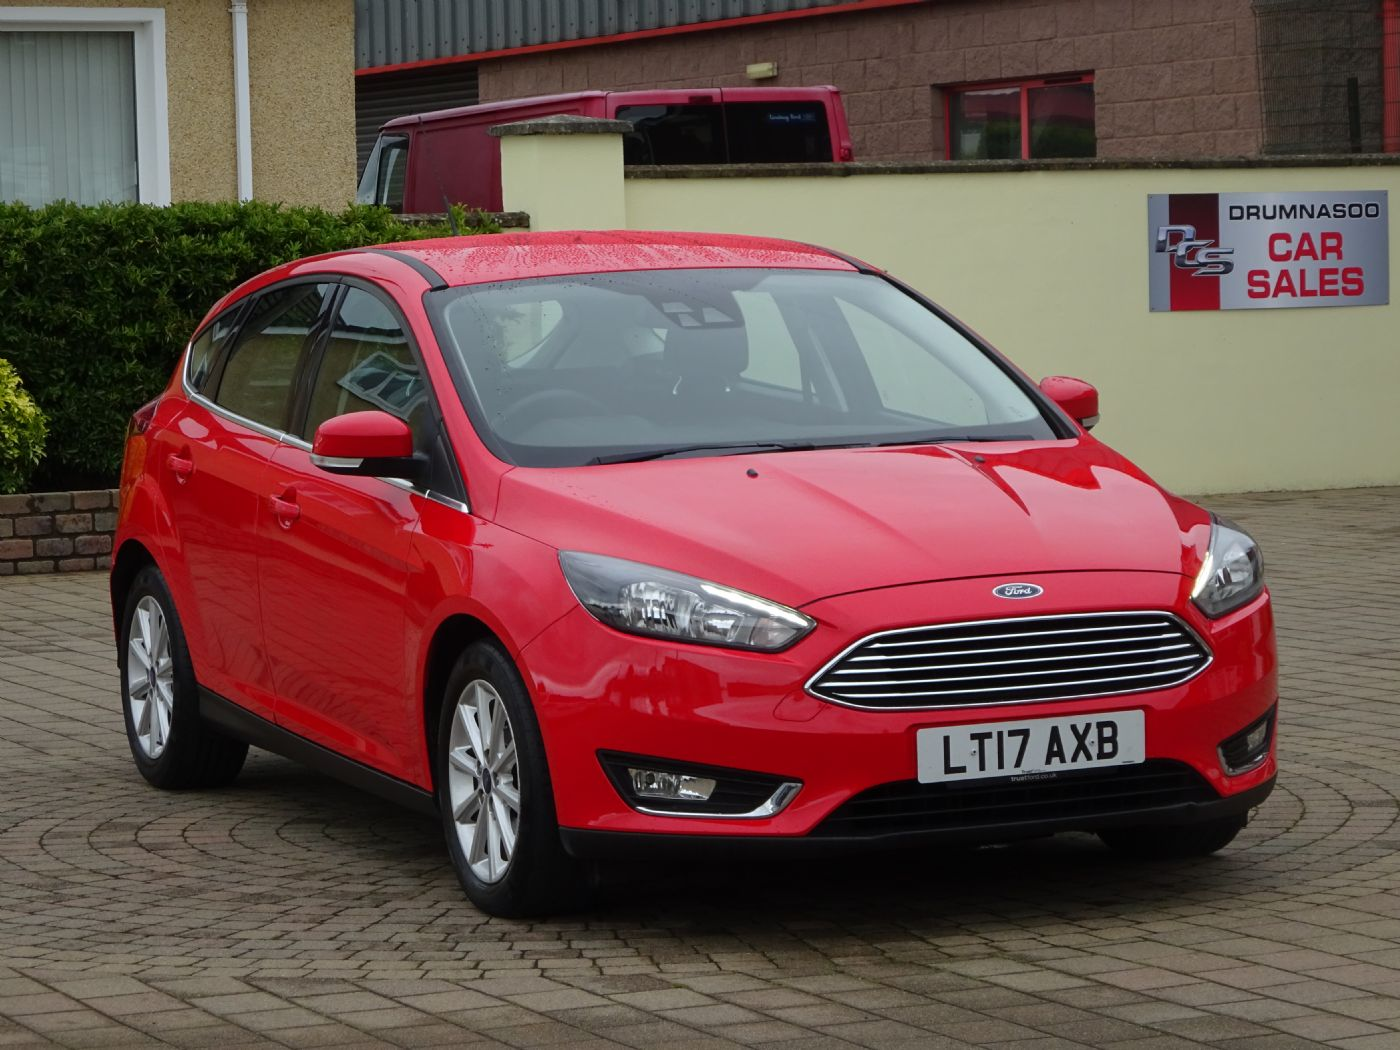 Ford Focus Titanium 1.5 Tdci 120, Sat nav, Zero road tax